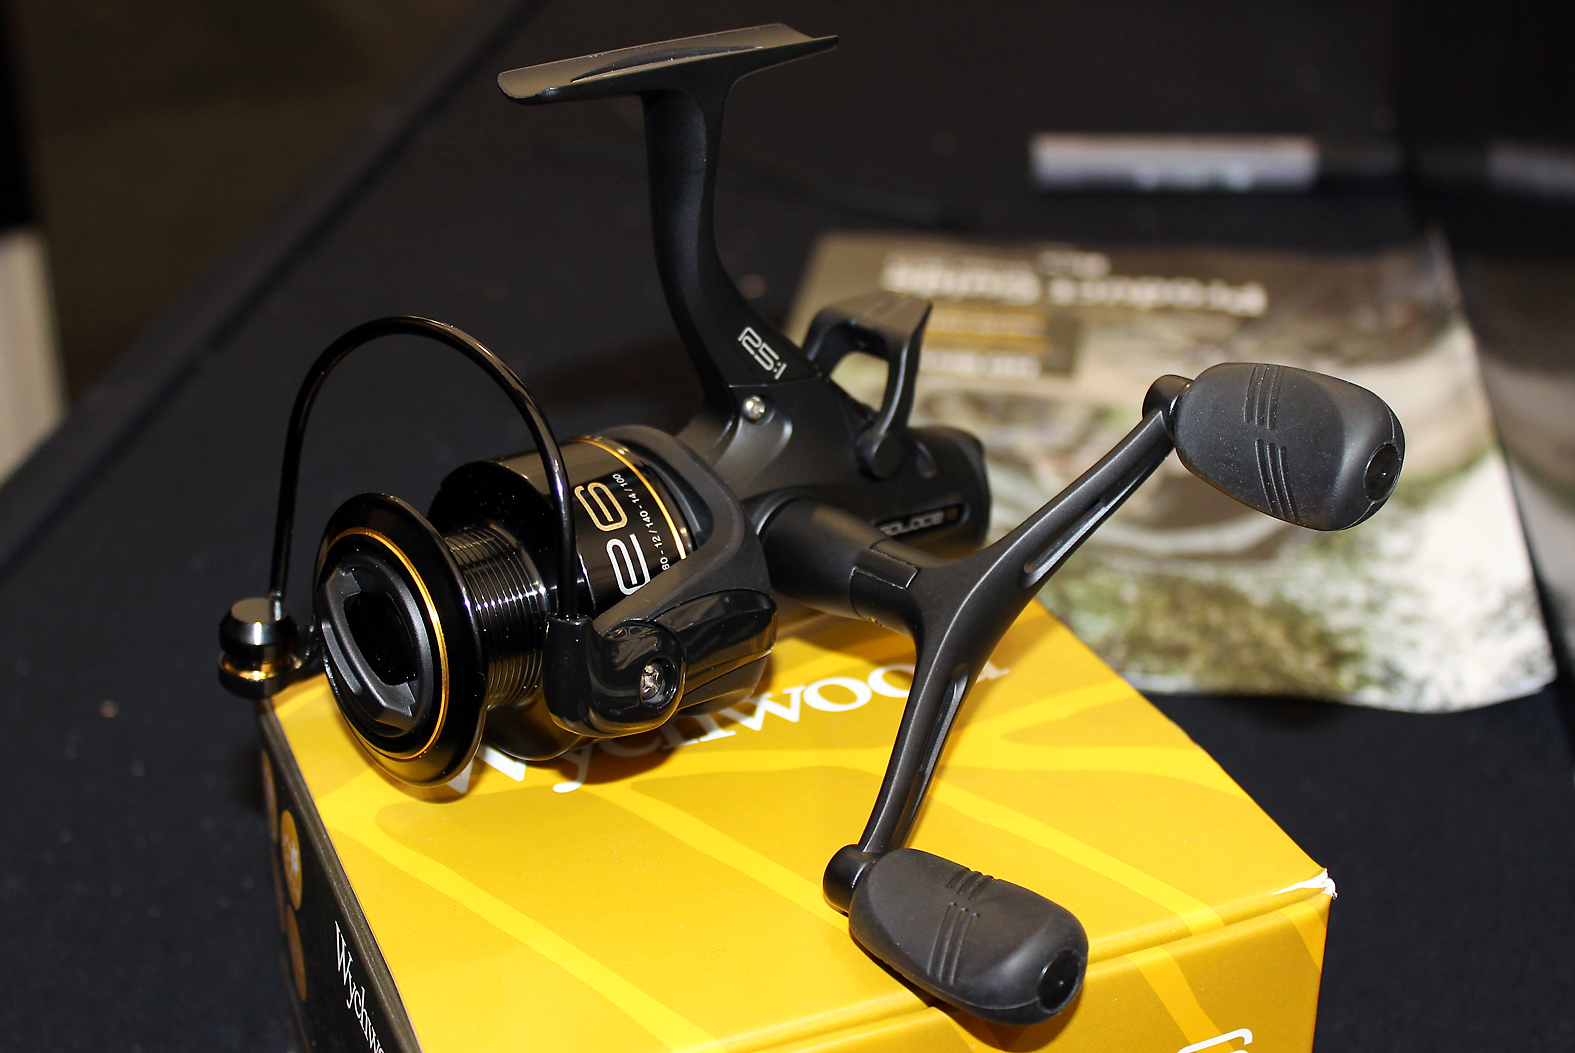 Wychwood's Solace 6 reel, new options for the specialist angler perhaps?